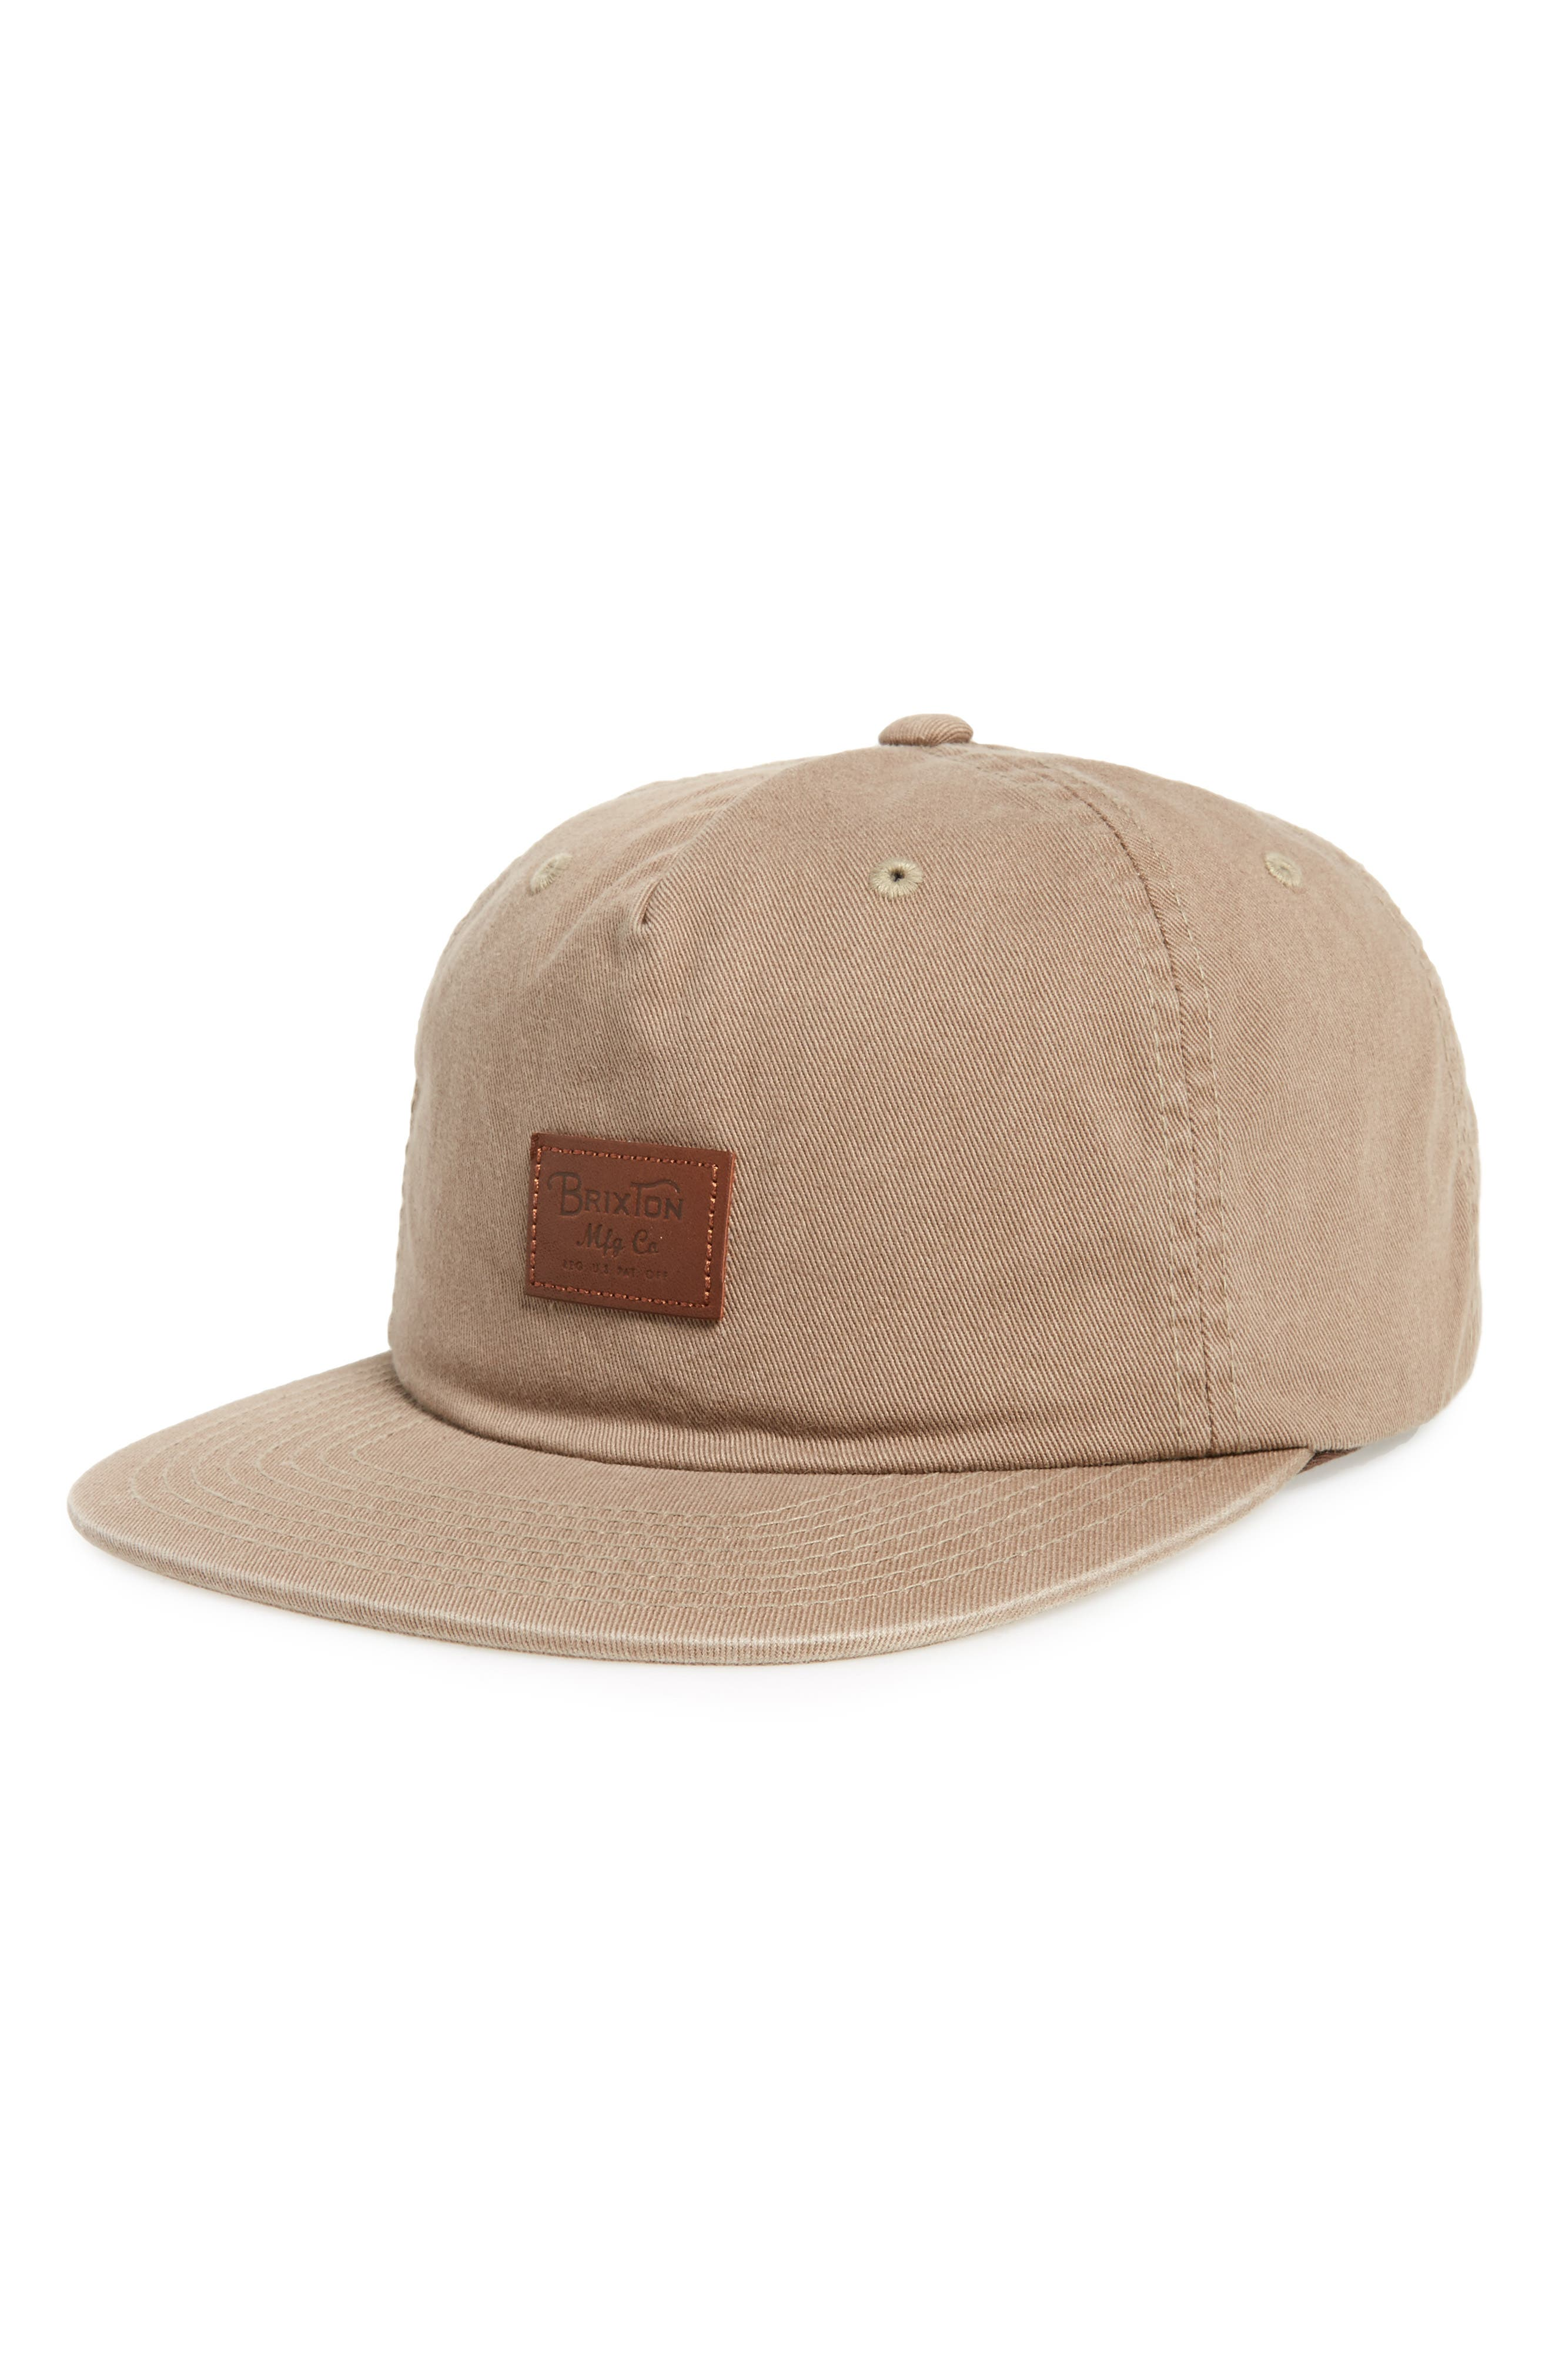 Grade II Snapback Baseball Cap,                             Main thumbnail 1, color,                             Washed Mocha